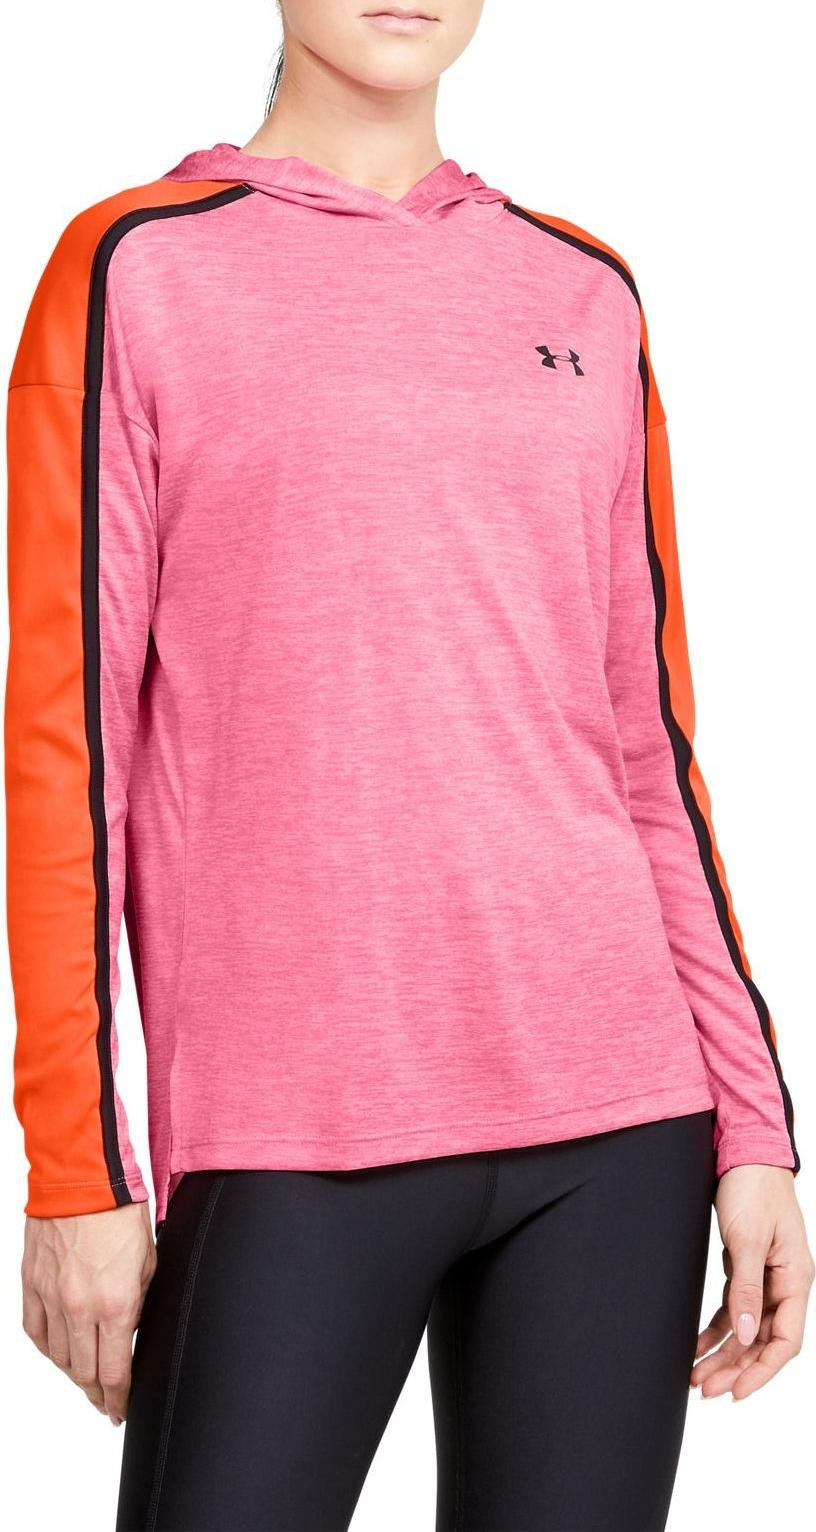 Mikina s kapucňou Under Armour Under Armour Tech Twist Graphic Hoodie